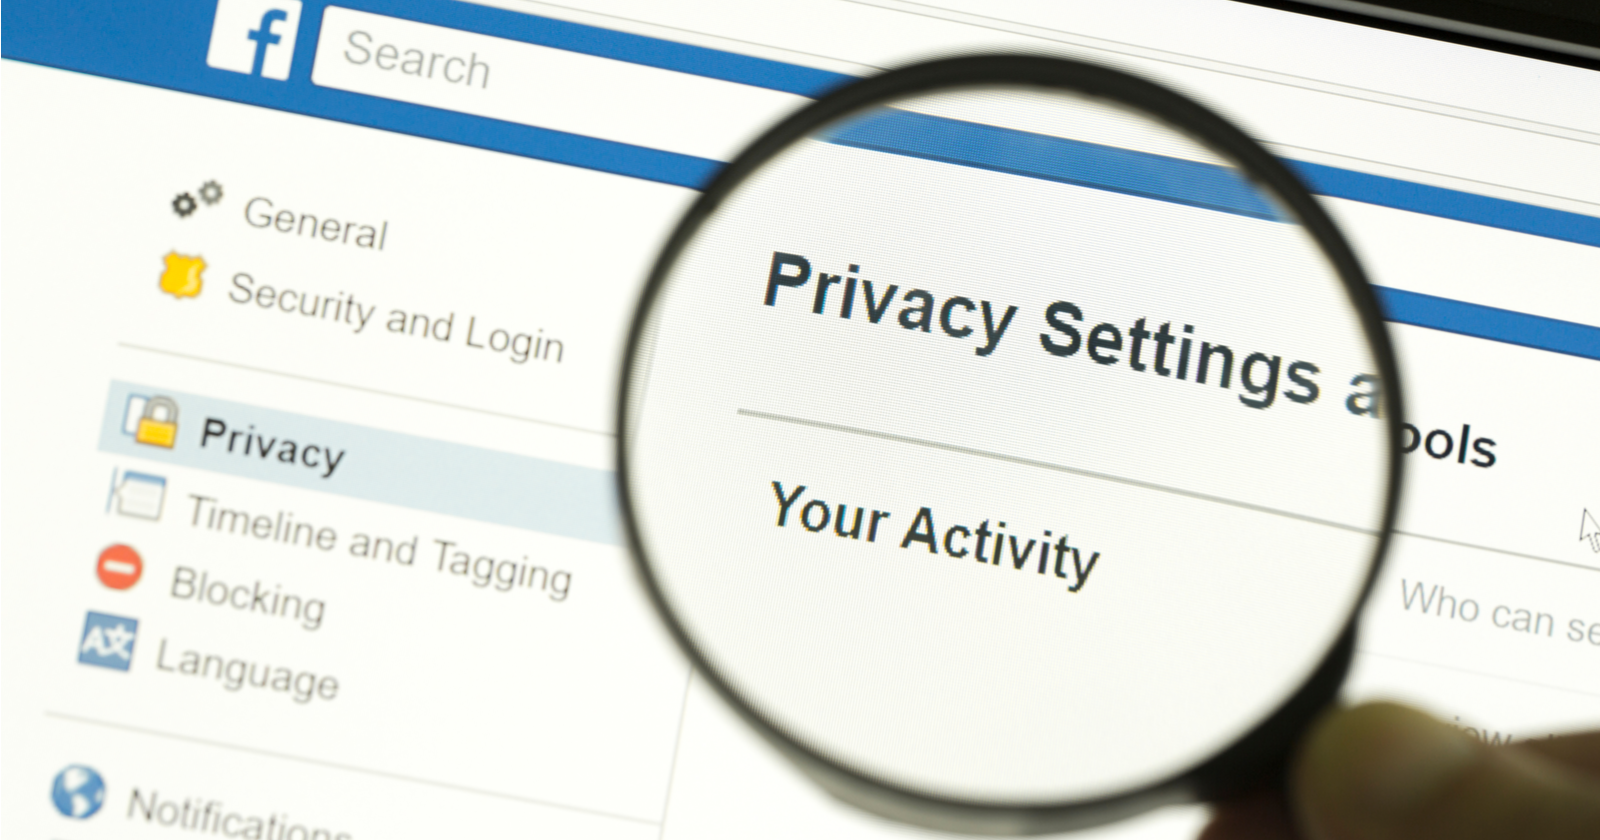 What to do when your account gets hacked